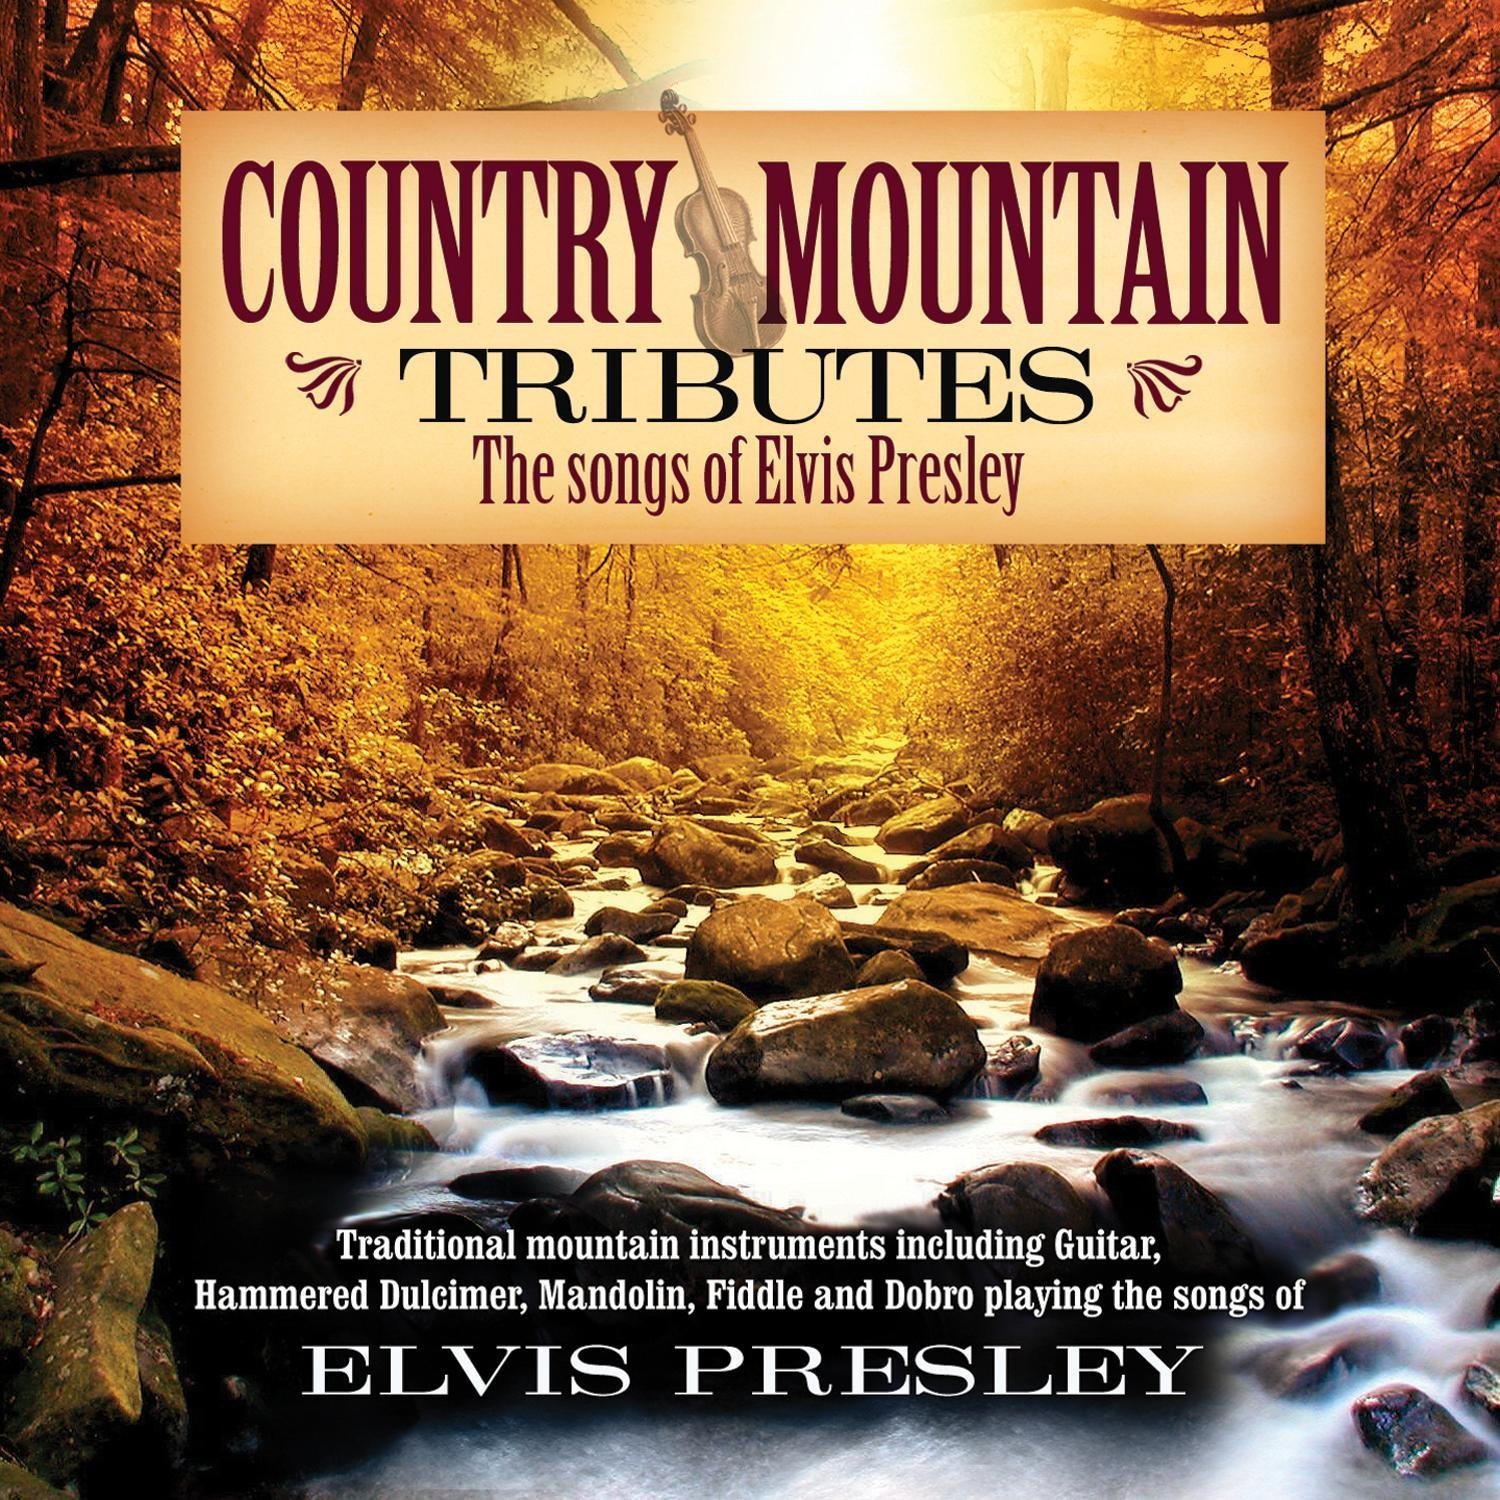 Country Mountain Tribute to Elvis Presley